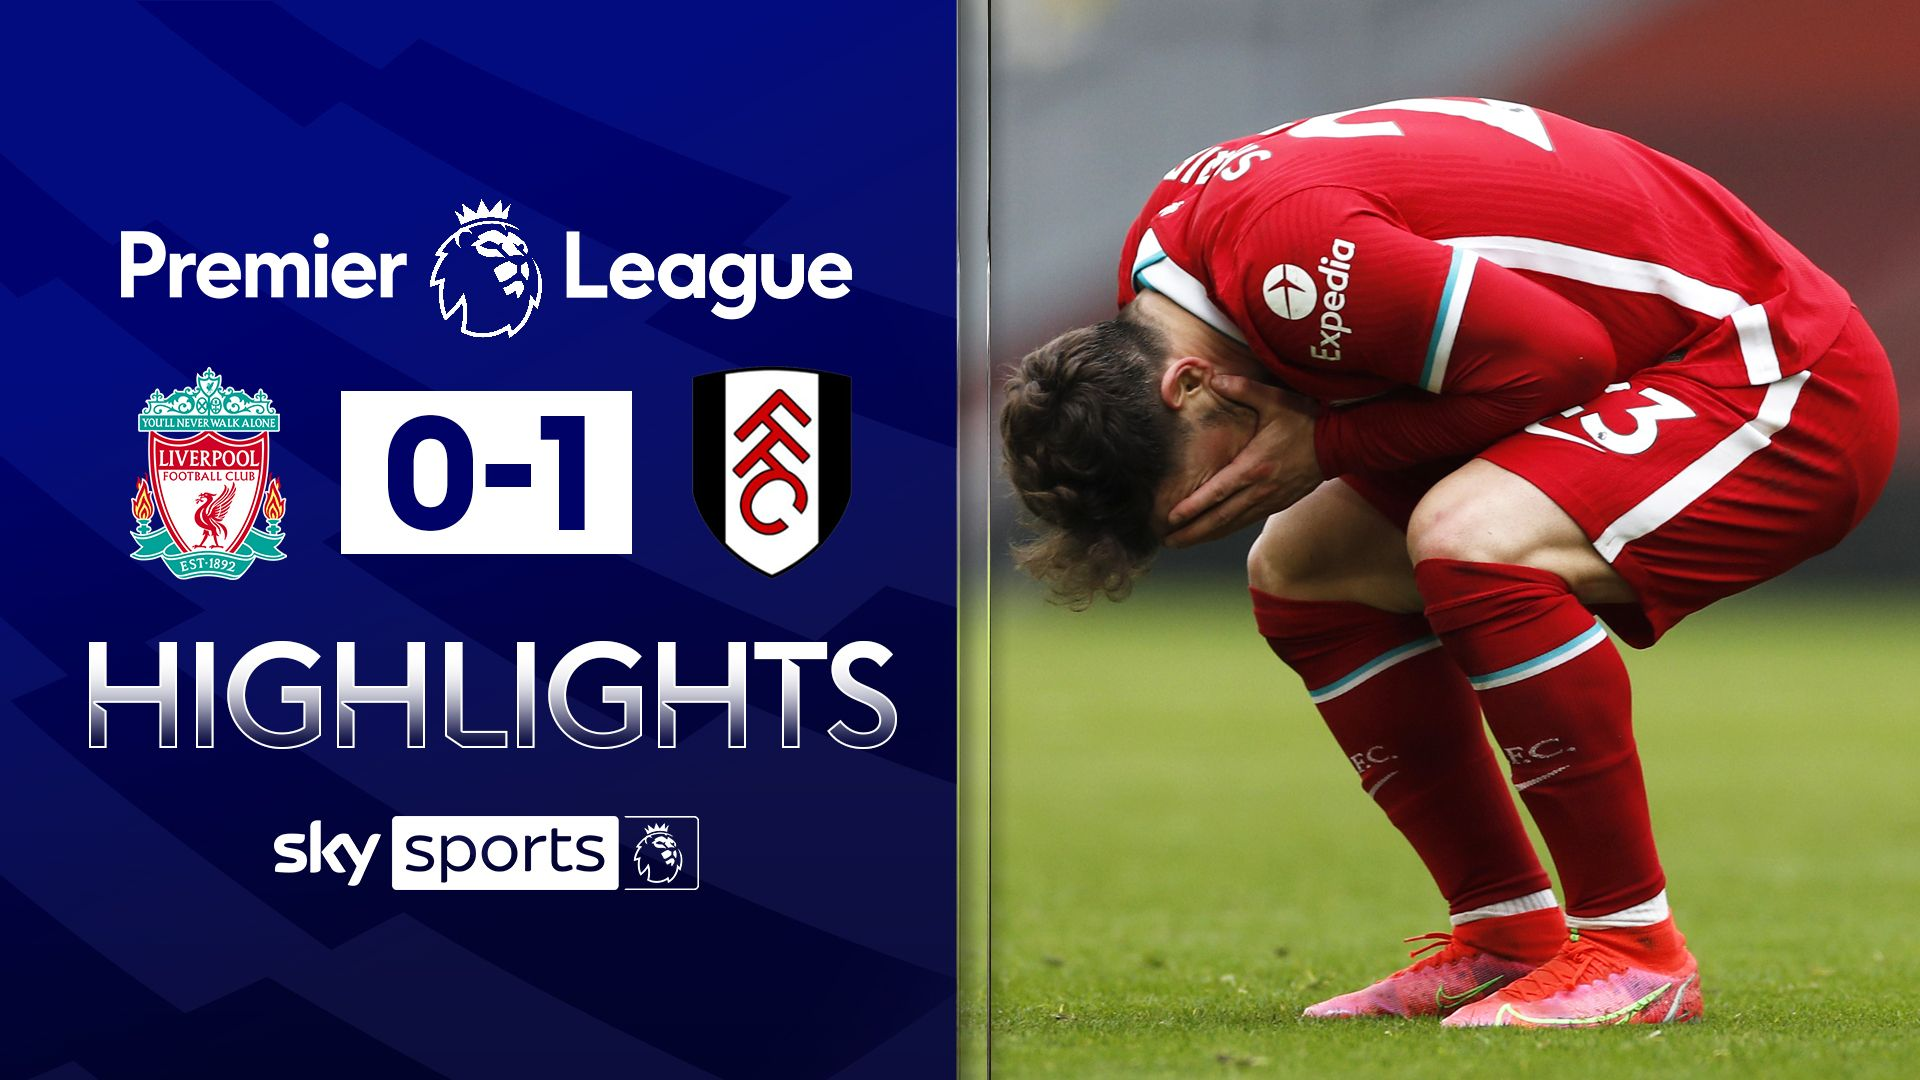 Liverpool lose again at Anfield